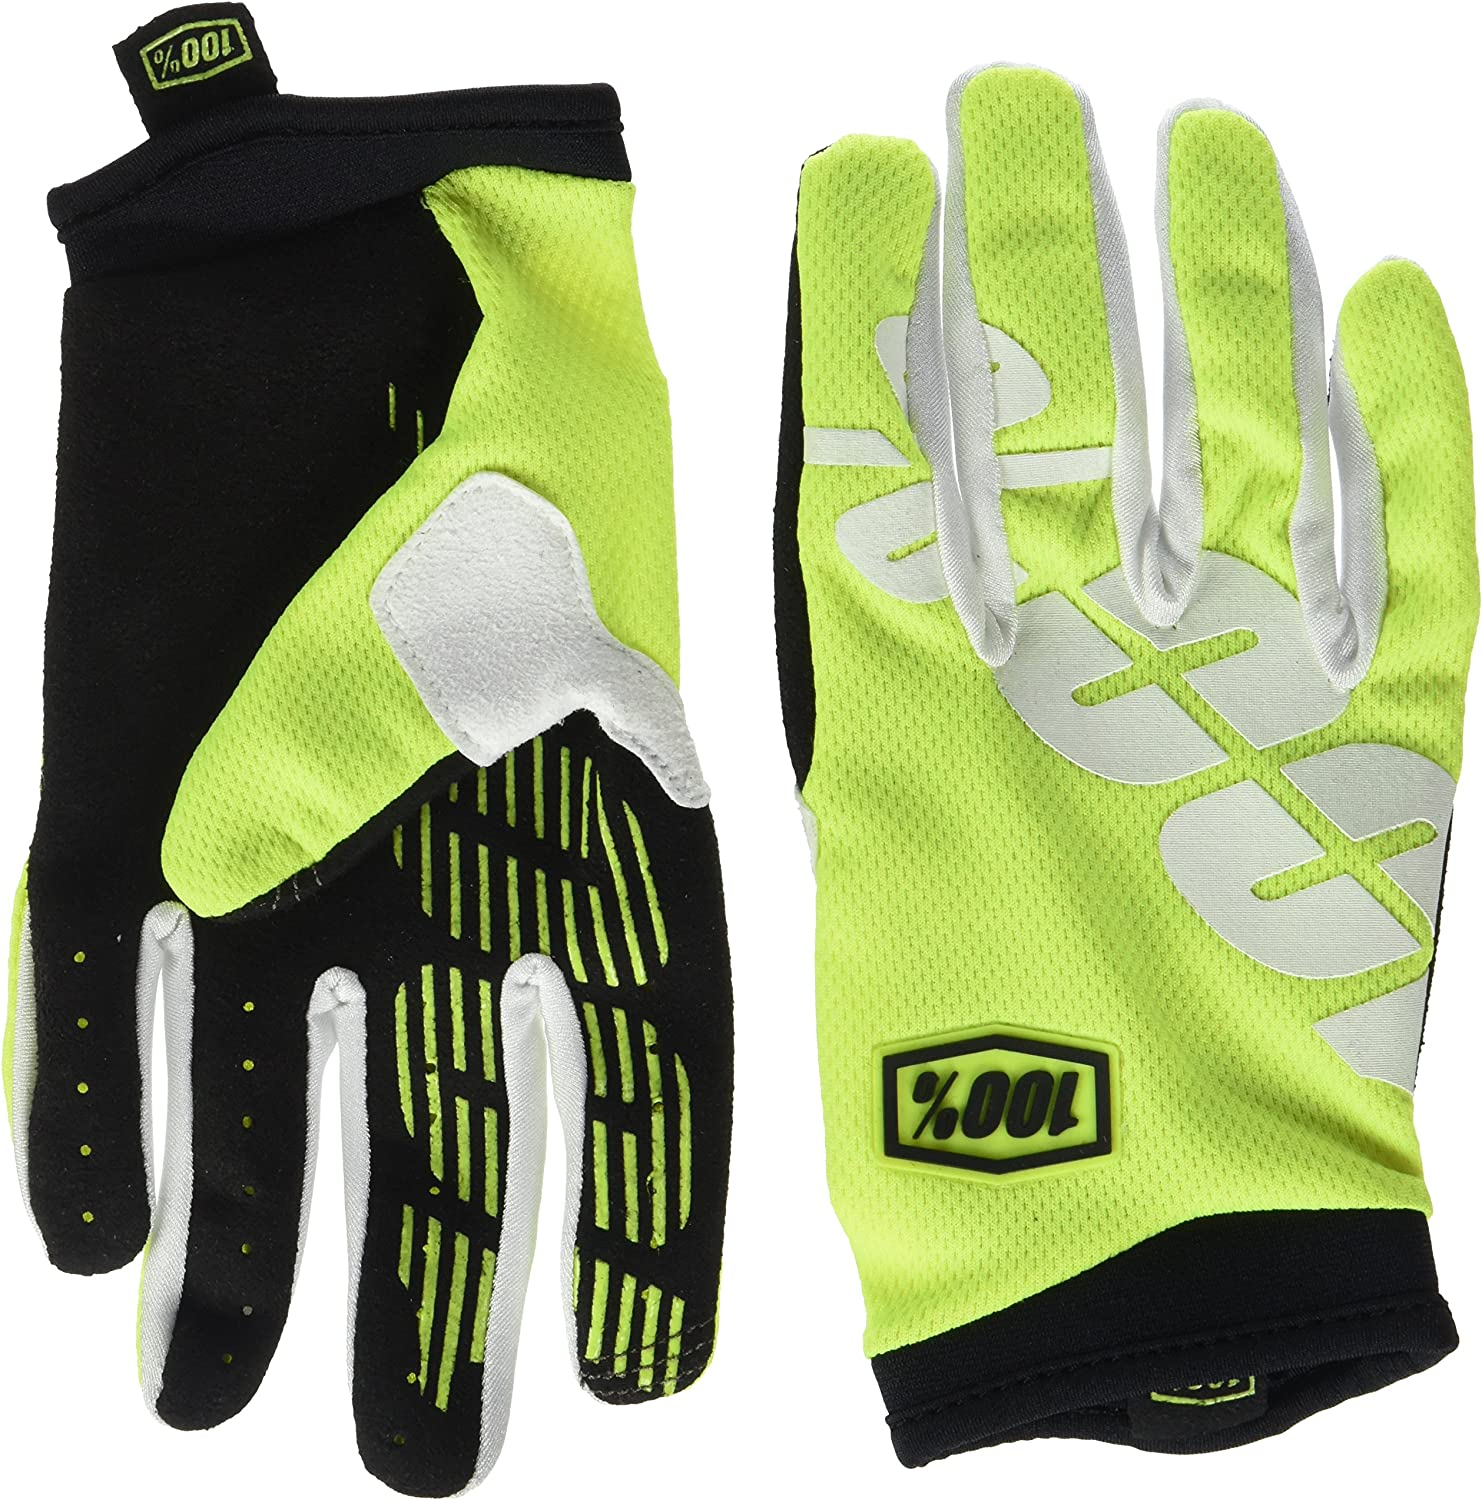 Motorcycle Leather Gloves with Protectors Neon Yellow//Green White Size S to